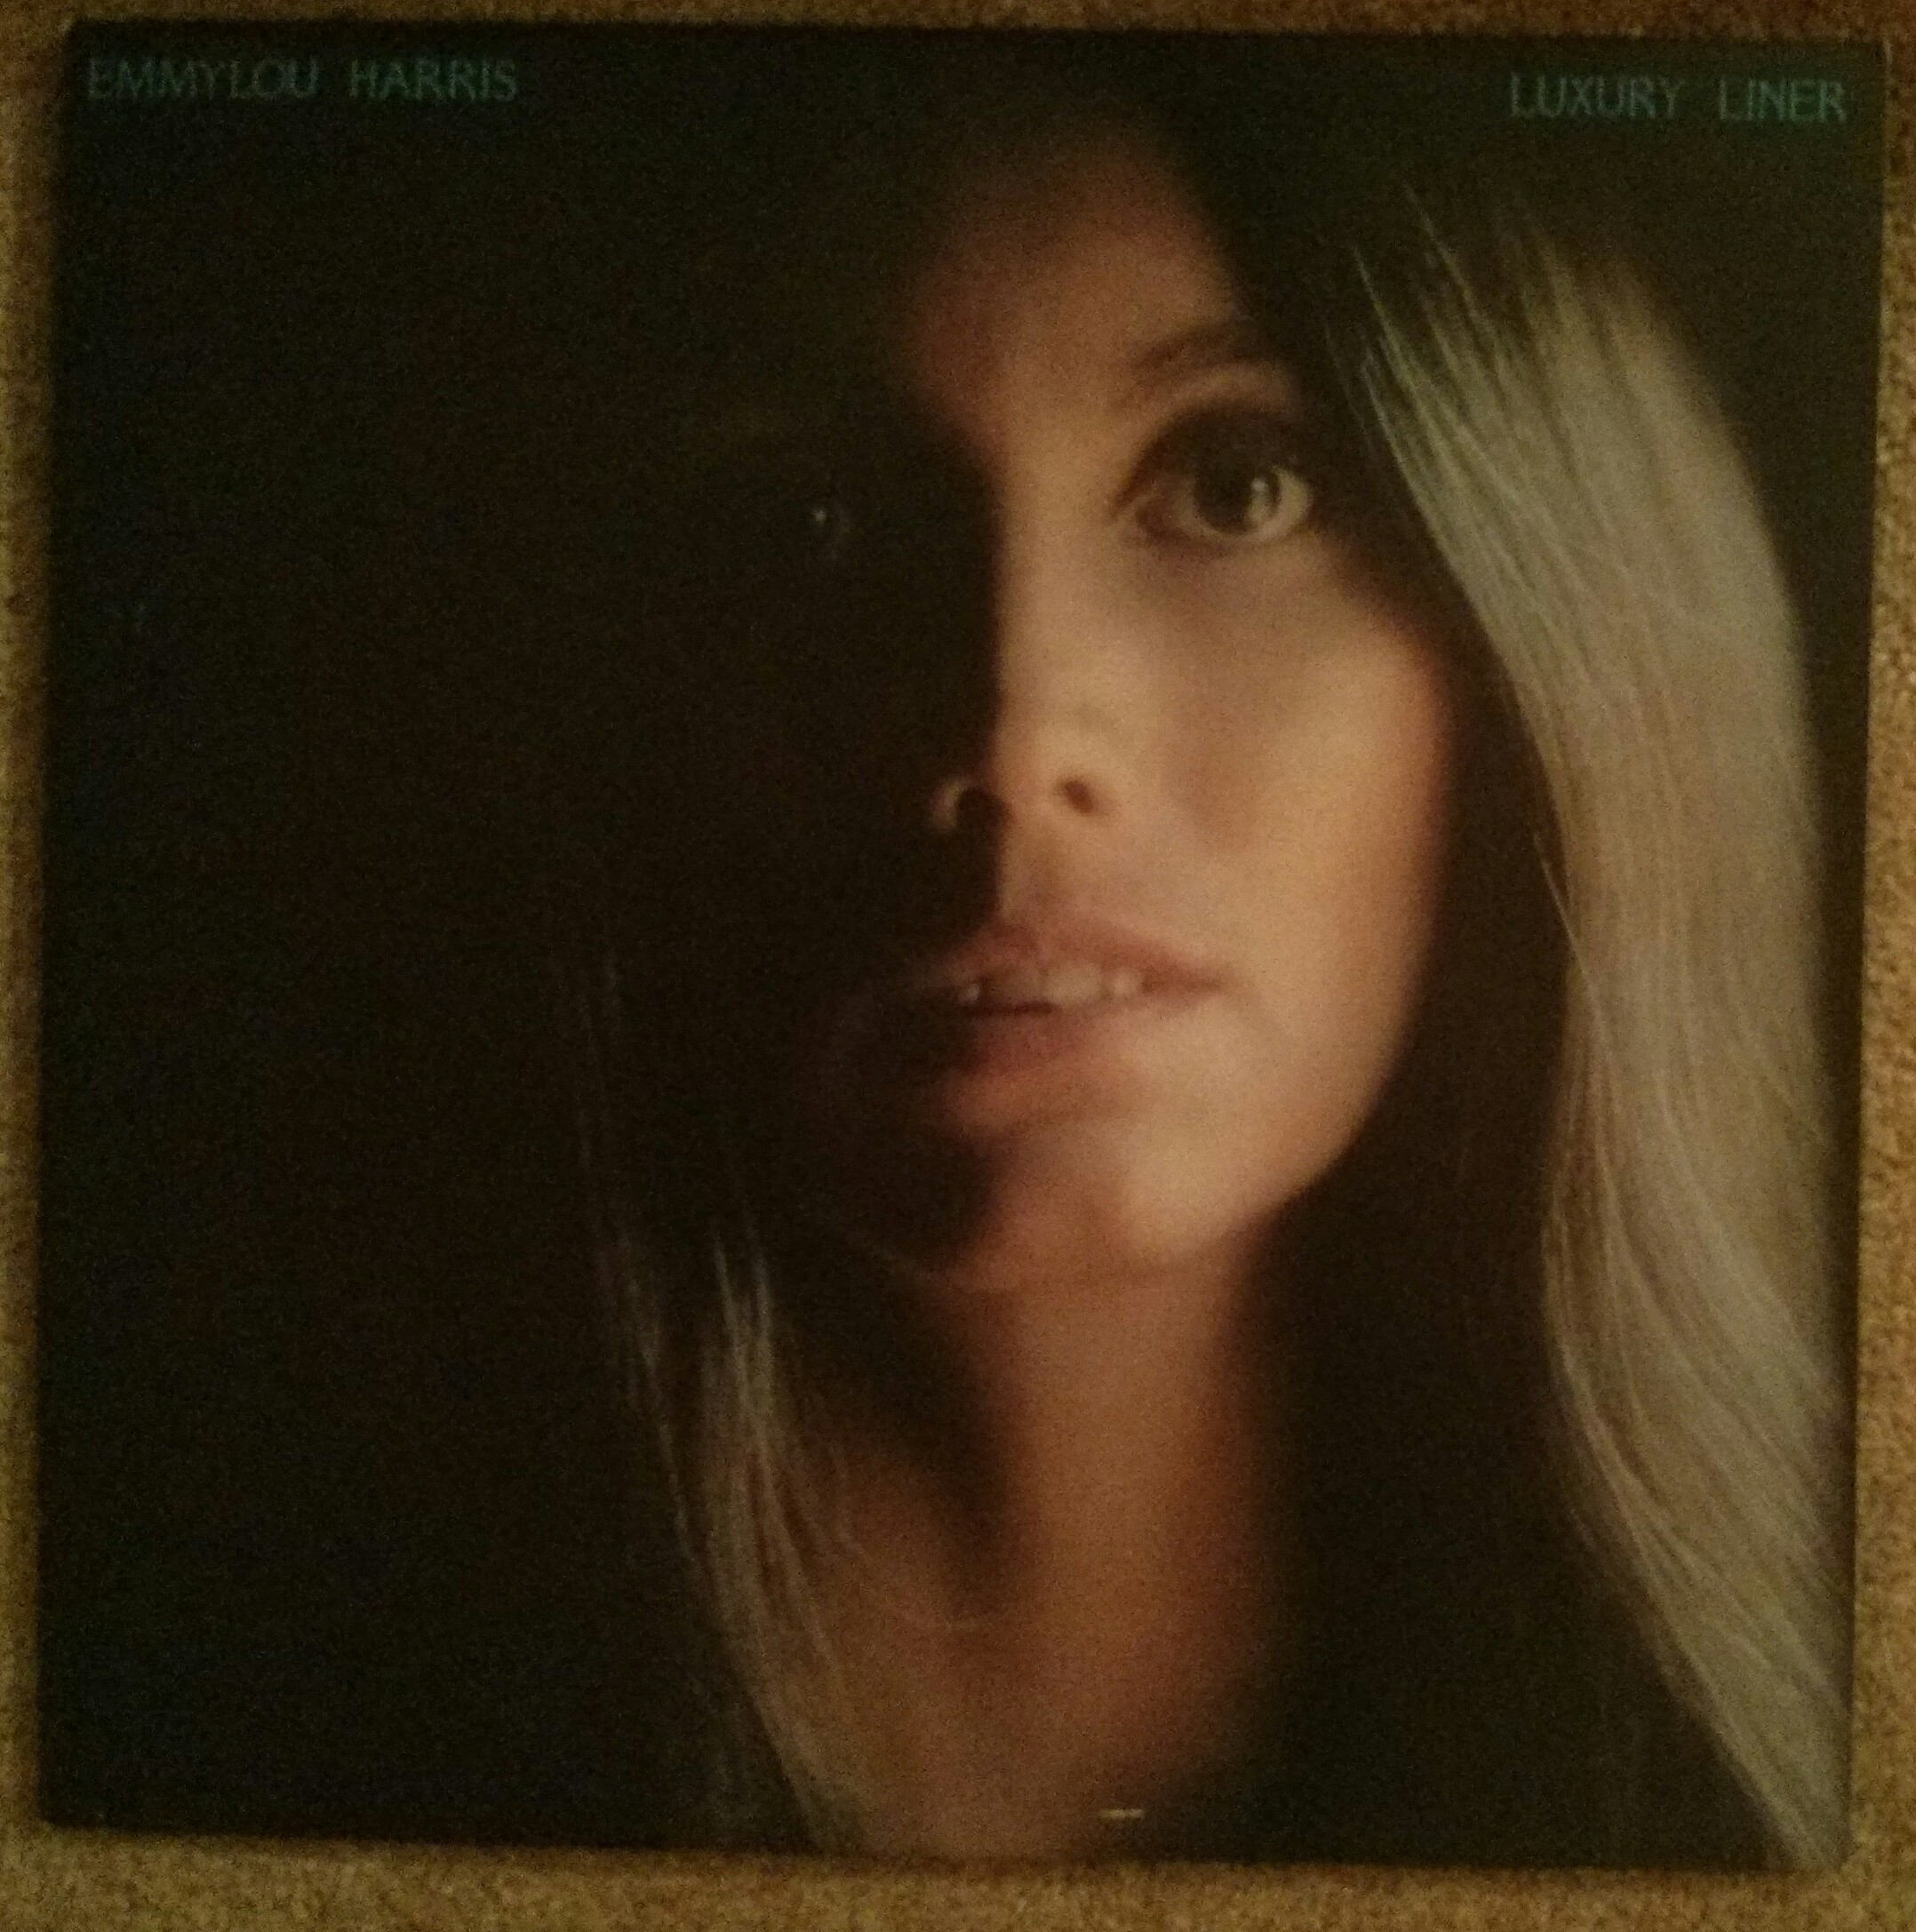 emmylou harris luxury liner - photo #7